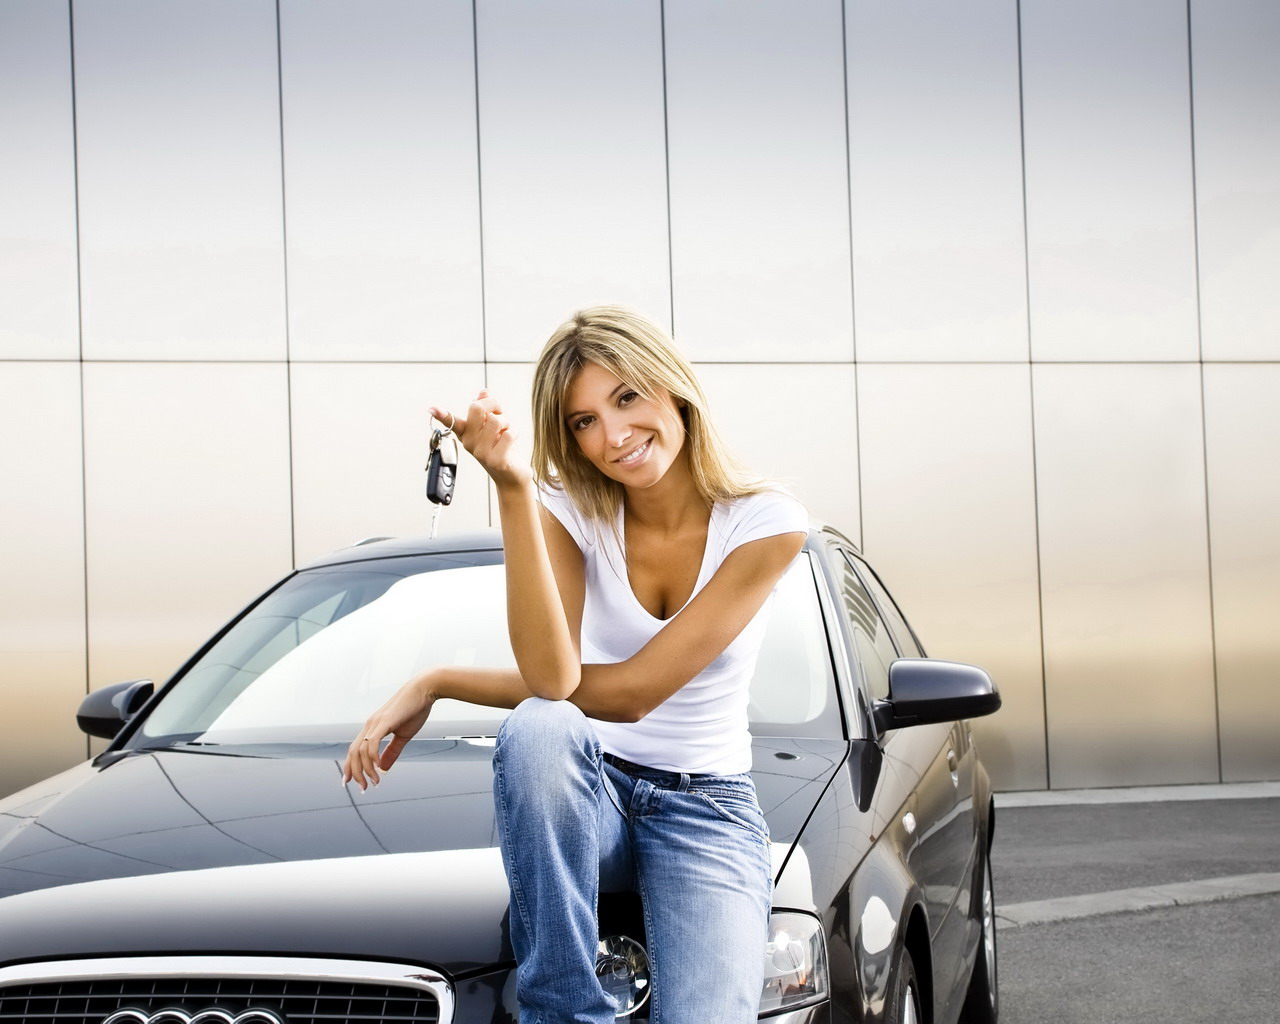 Finding Quality Auto Insurance at Budget Prices